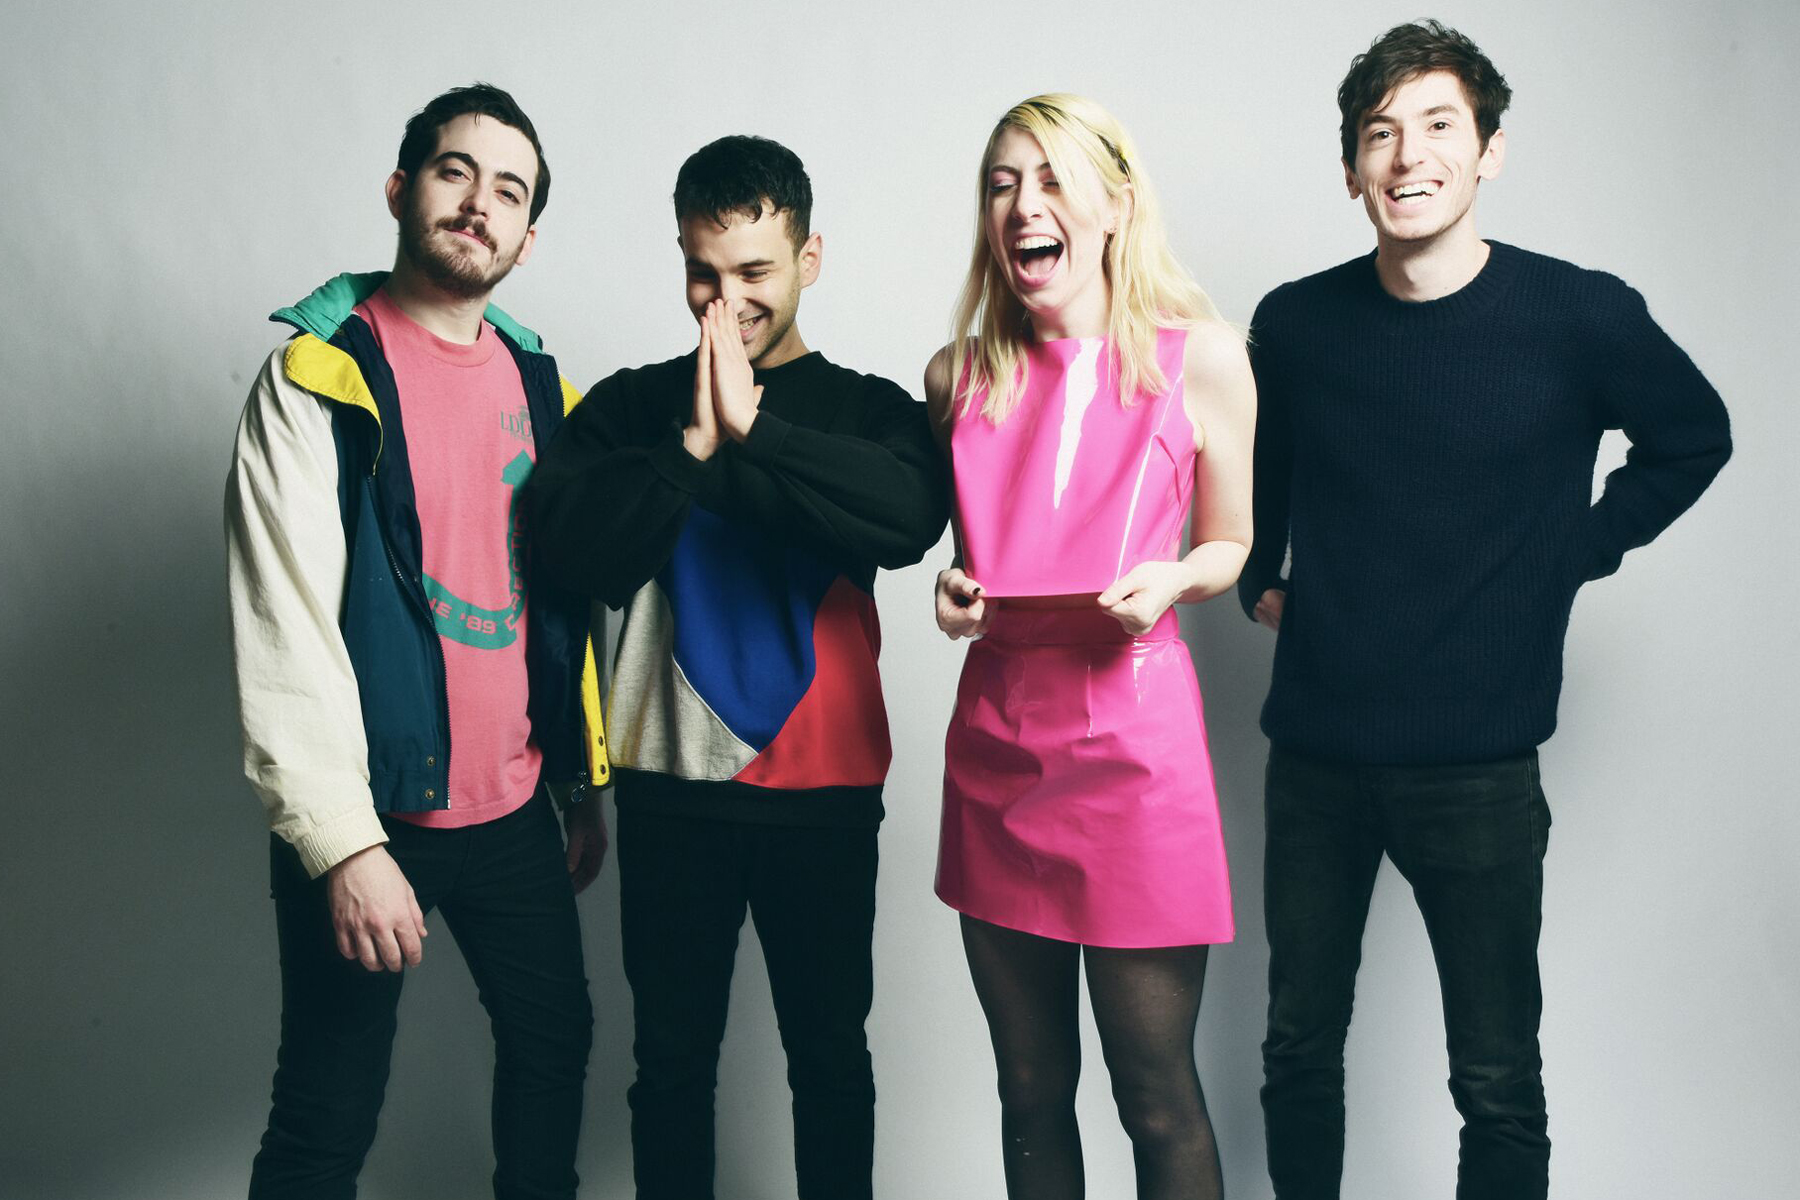 """Charly Bliss: """"I Just Hope That Our Music Makes People Feel Really Strong"""""""